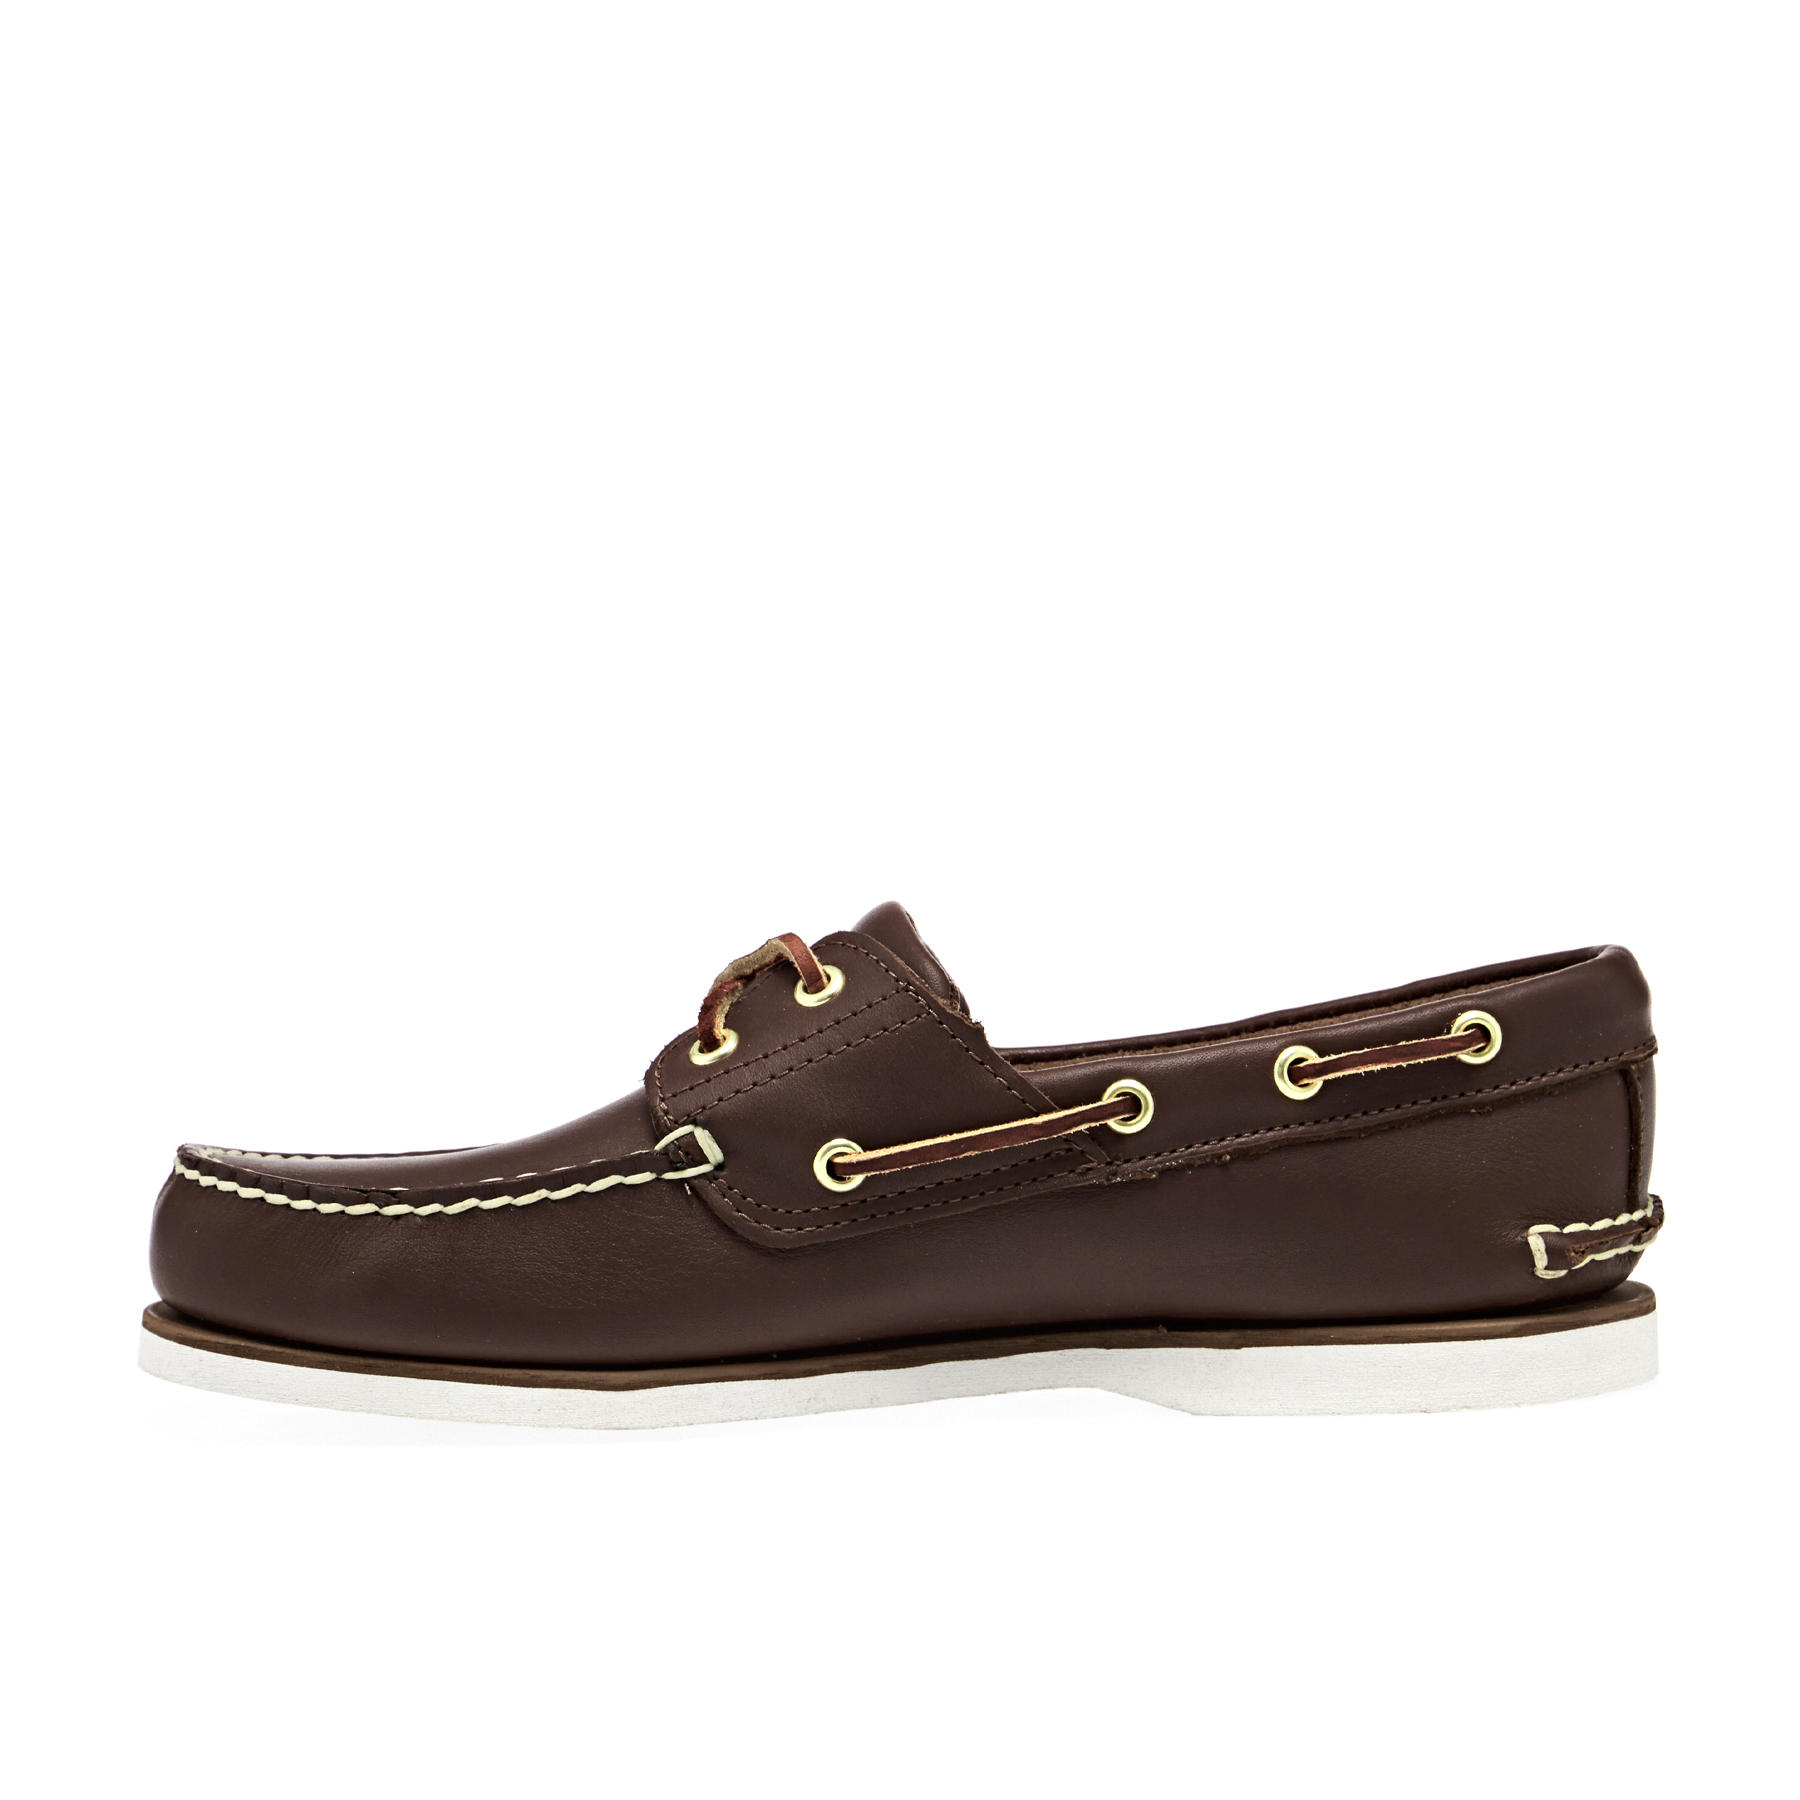 Mid Eye Dress Full Classic Shoes Timberland 2 Brown Boat zpLUMGjqSV